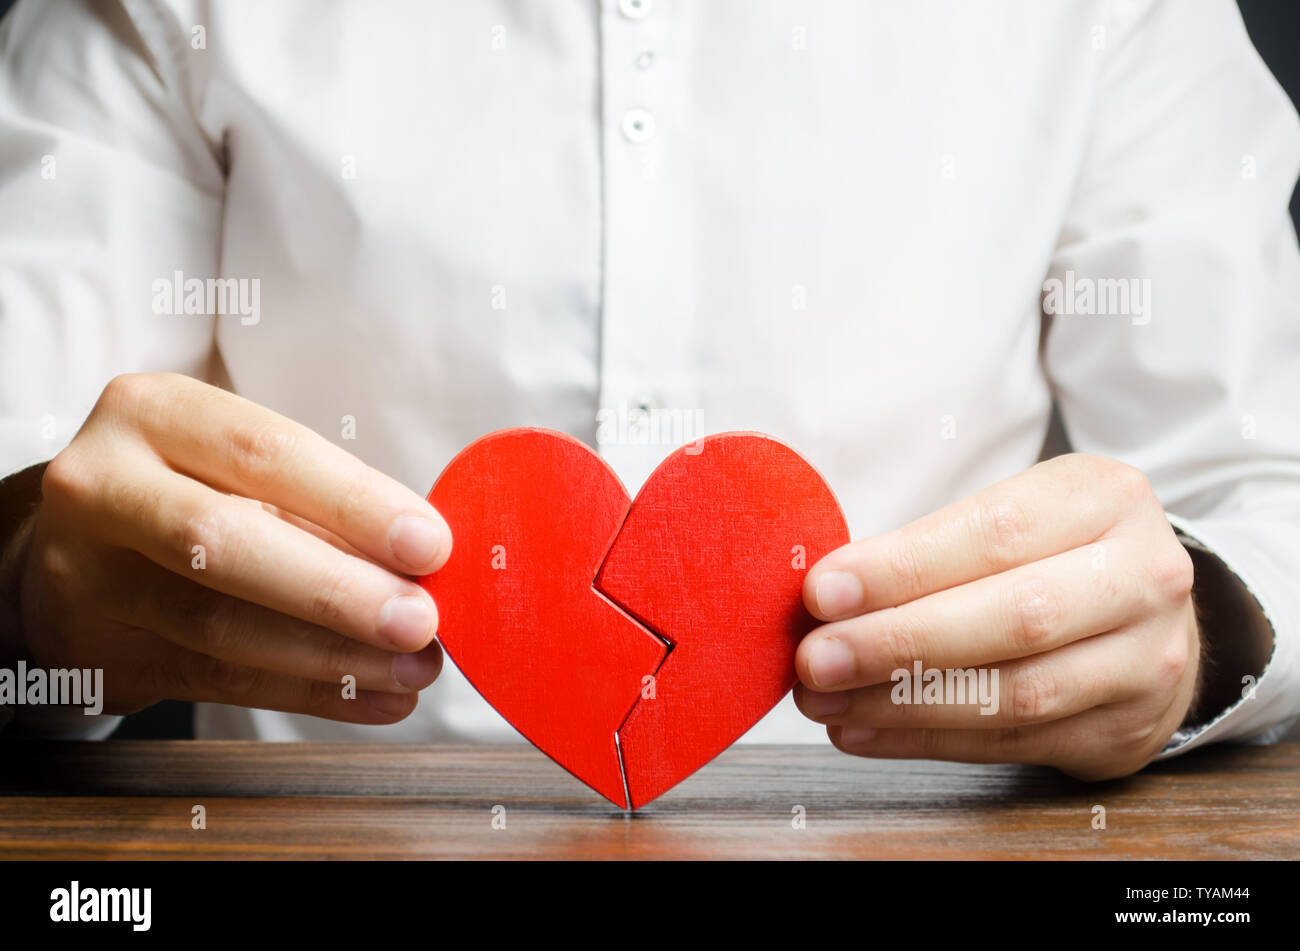 A man collects a broken heart in his hands. Concept of love and relationships. Family psychotherapist services. Reconciliation. Saving the family. Sea Stock Photo